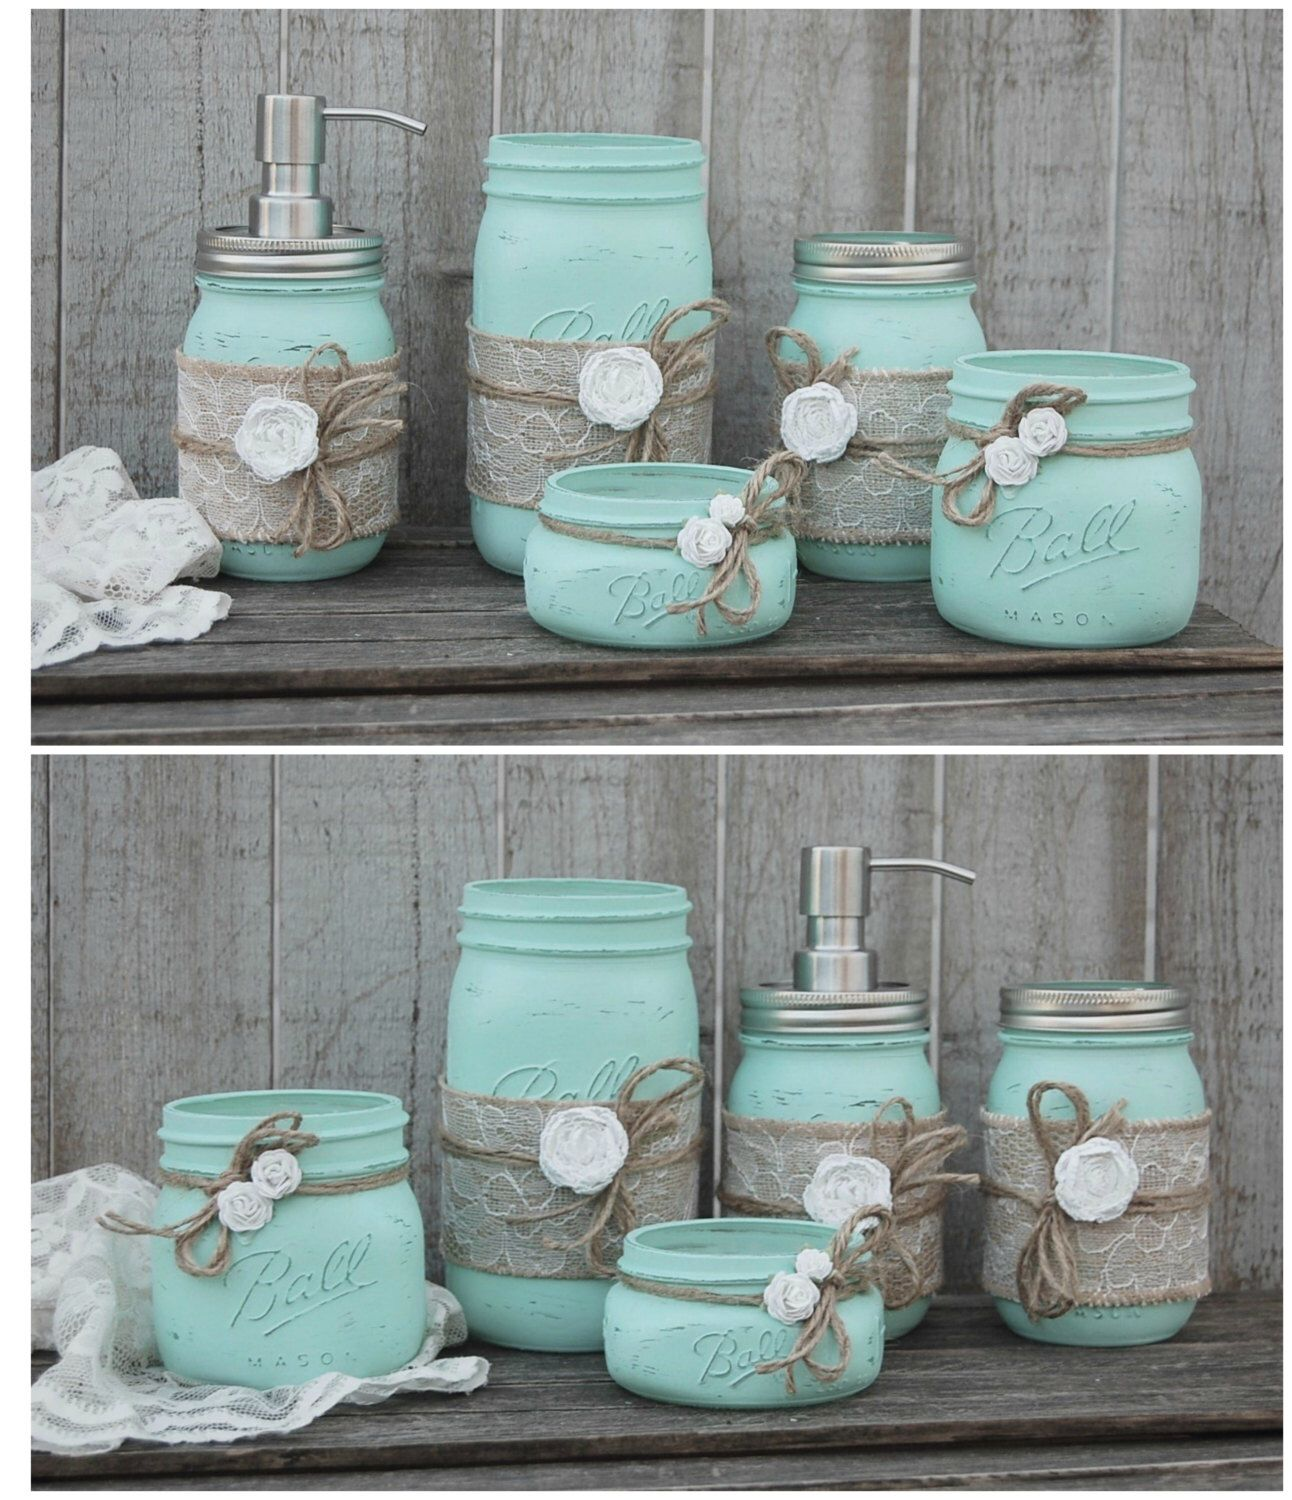 Bathroom Art Minted: Mason Jar Bathroom Set, Mint Green, Shabby Chic, Soap